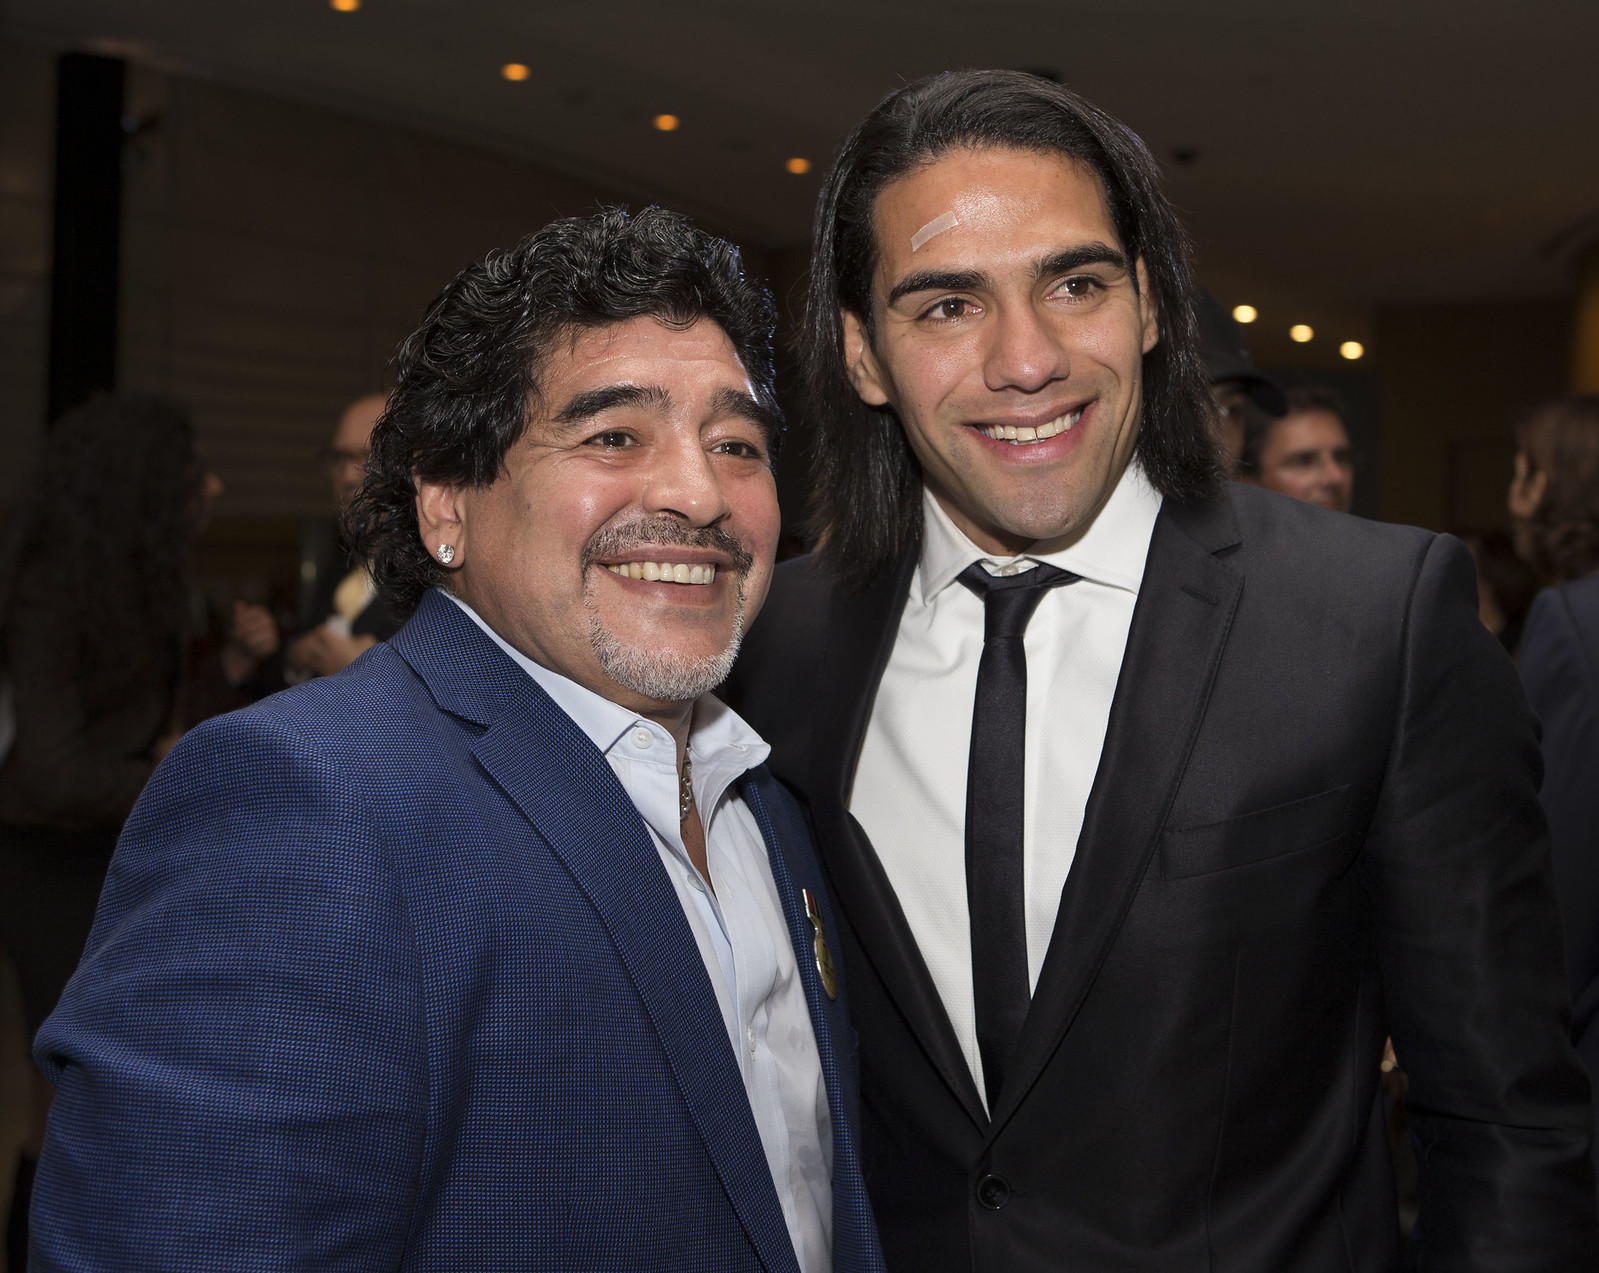 Diego Armando Maradona and Radamel Falcao